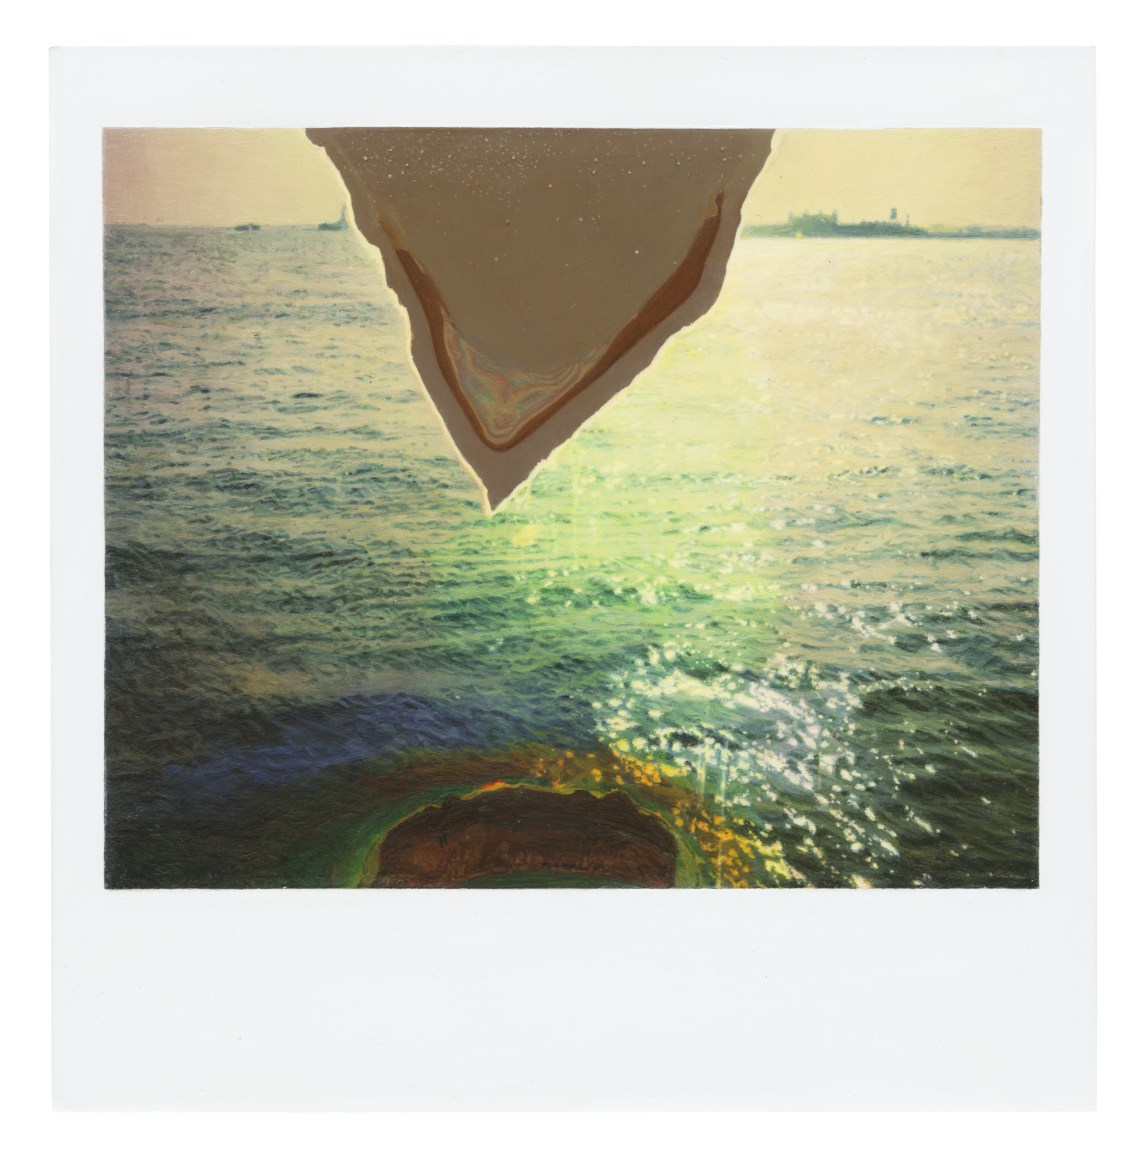 A painting of a polaroid photograph, made at one-to-one scale. The photograph depicts the surface of the ocean, with a triangle of emulsion loss cutting through the top center of the image.